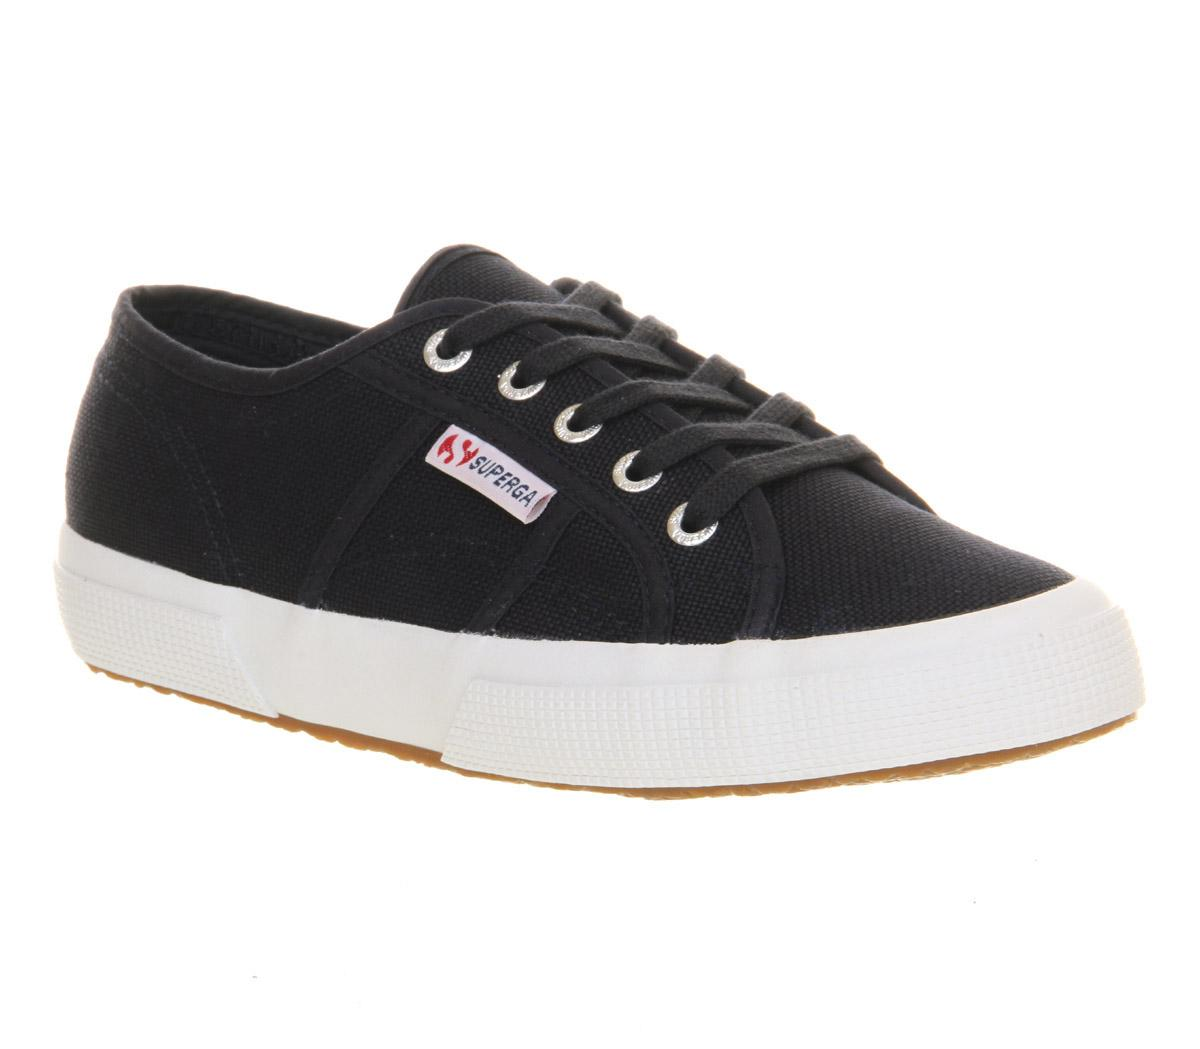 baf56b4a1e5a32 Superga 2750 Trainers Navy White - Office Girl